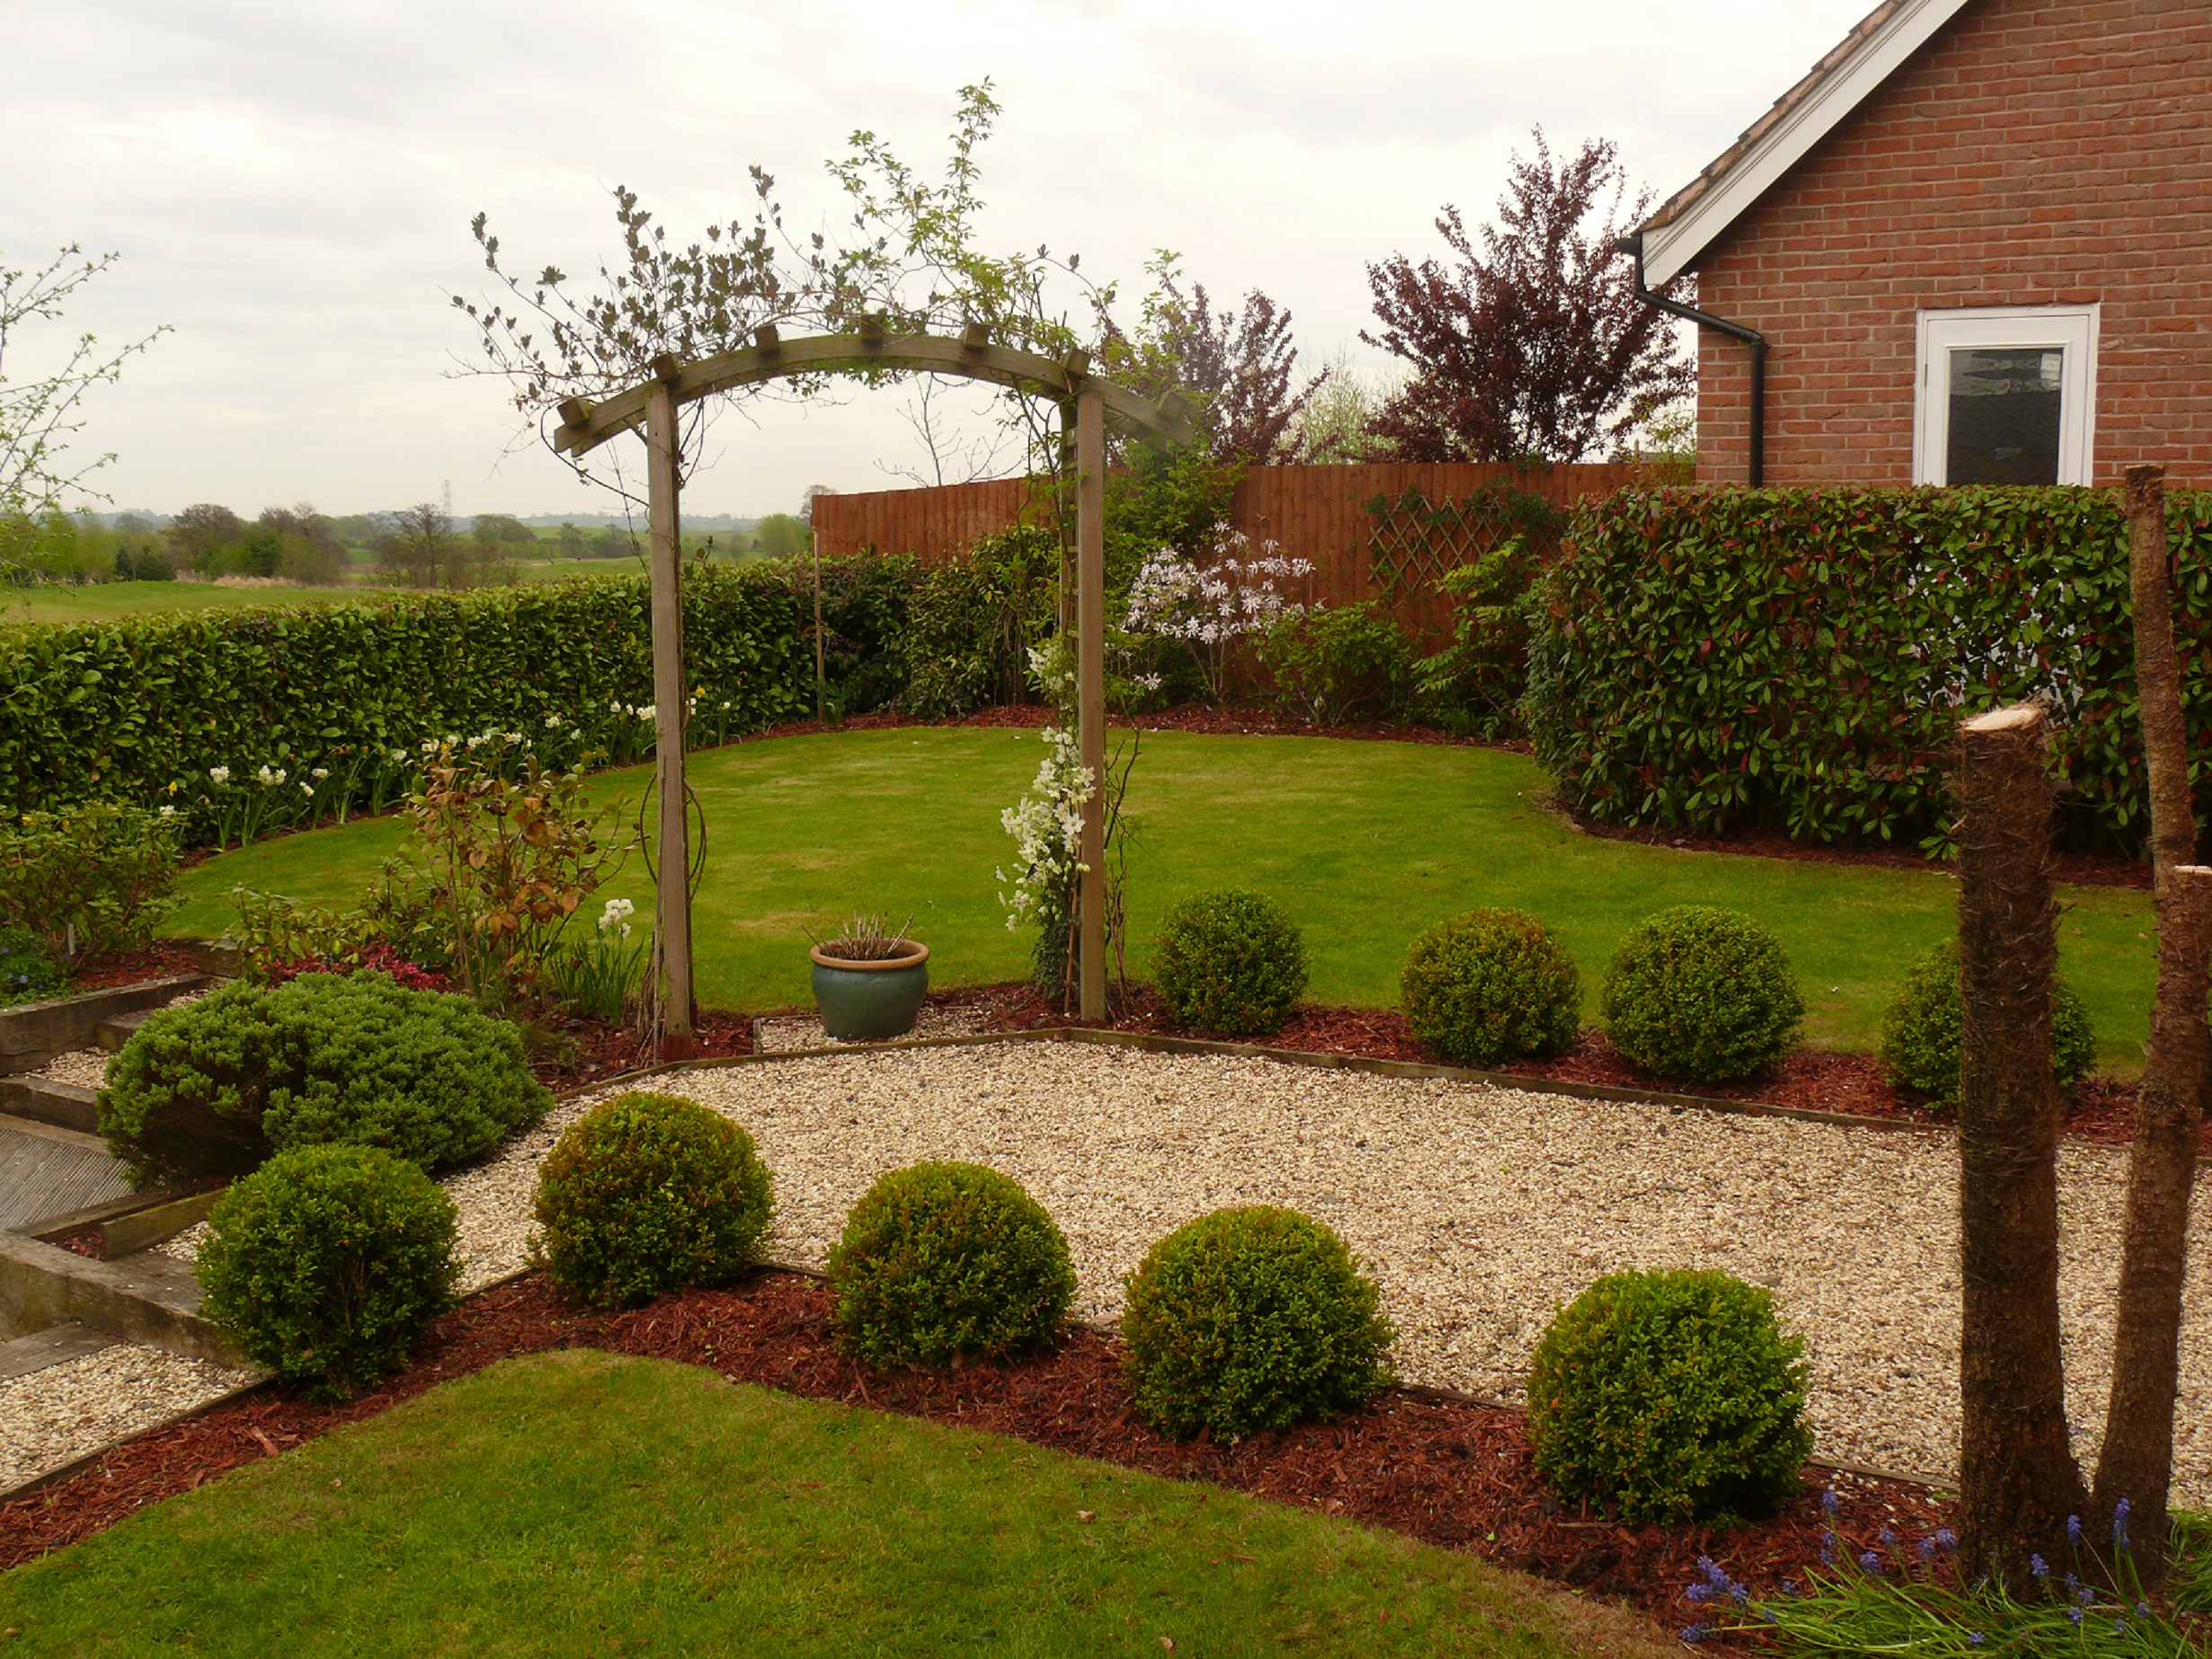 Garden Maintenance in Wychwood Park with Lawn and Borders maintained